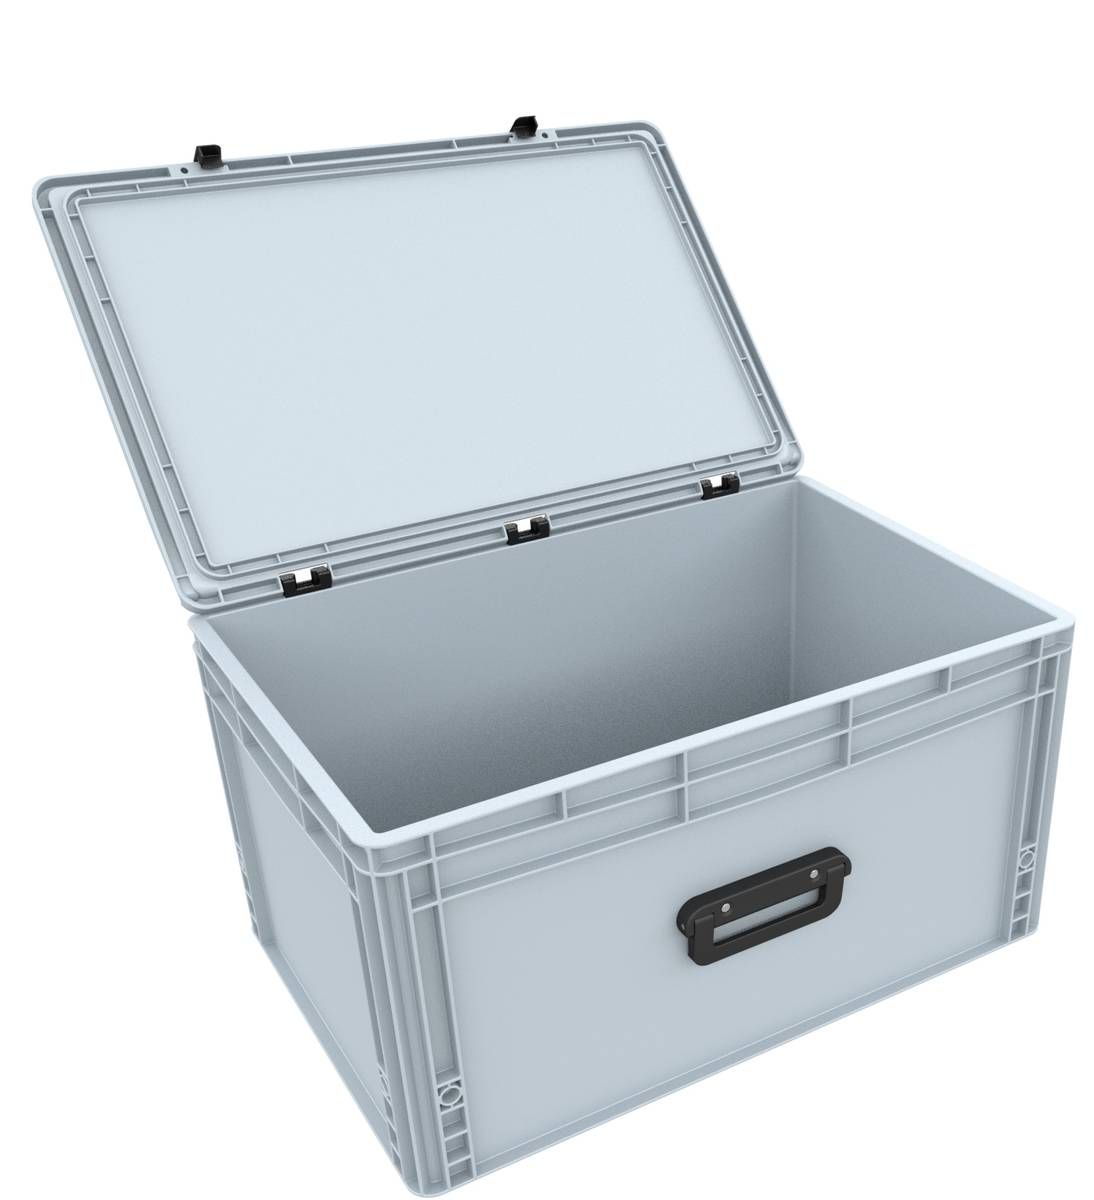 DSEB305G Euro Container Case with handle ED 64/32 1G